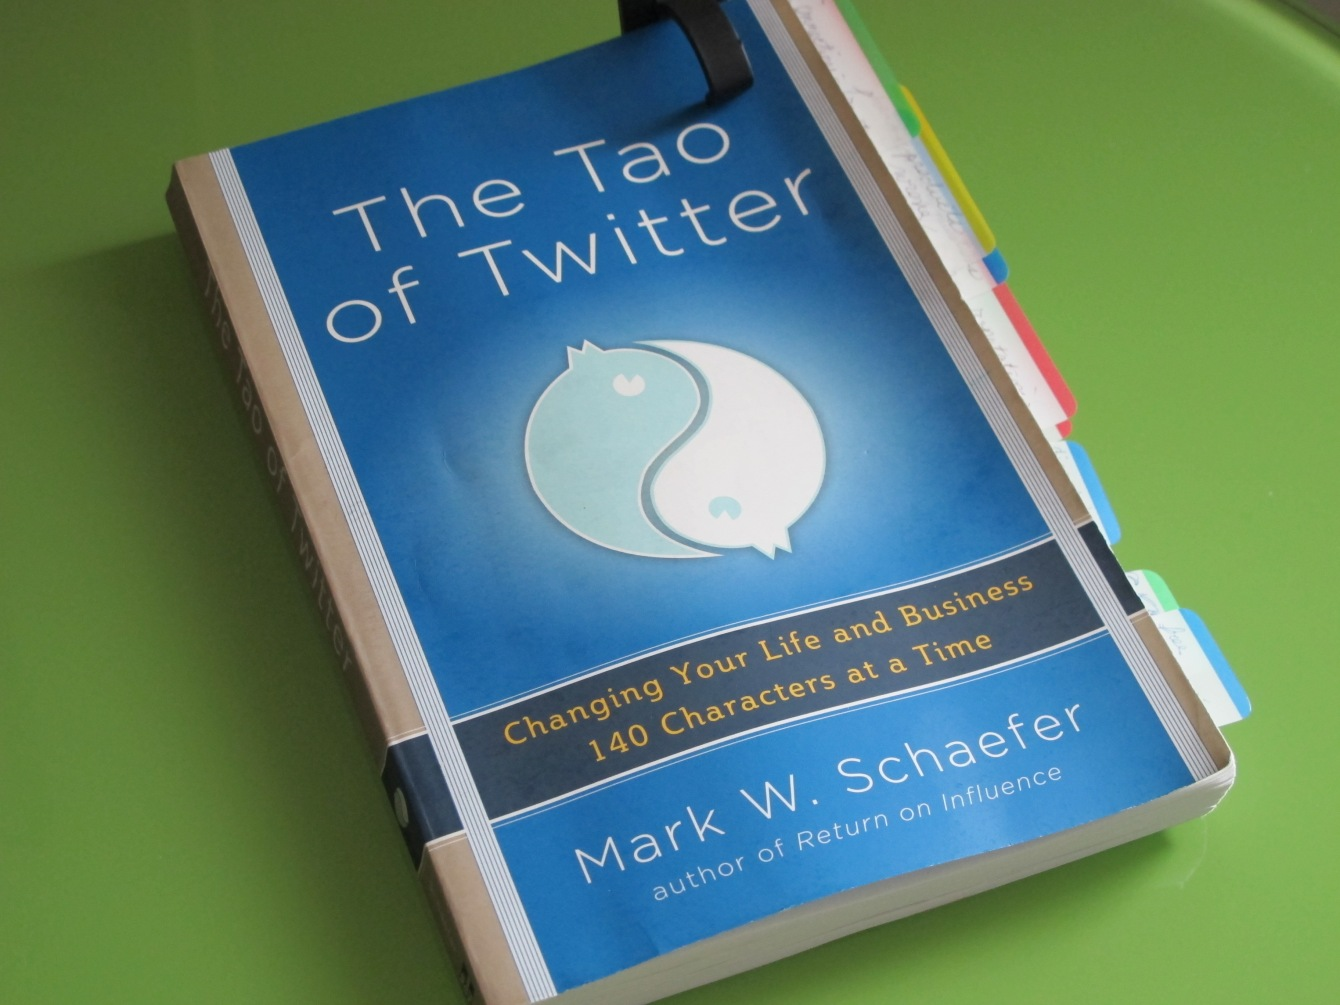 Anna Seacat's copy of The Tao of Twitter